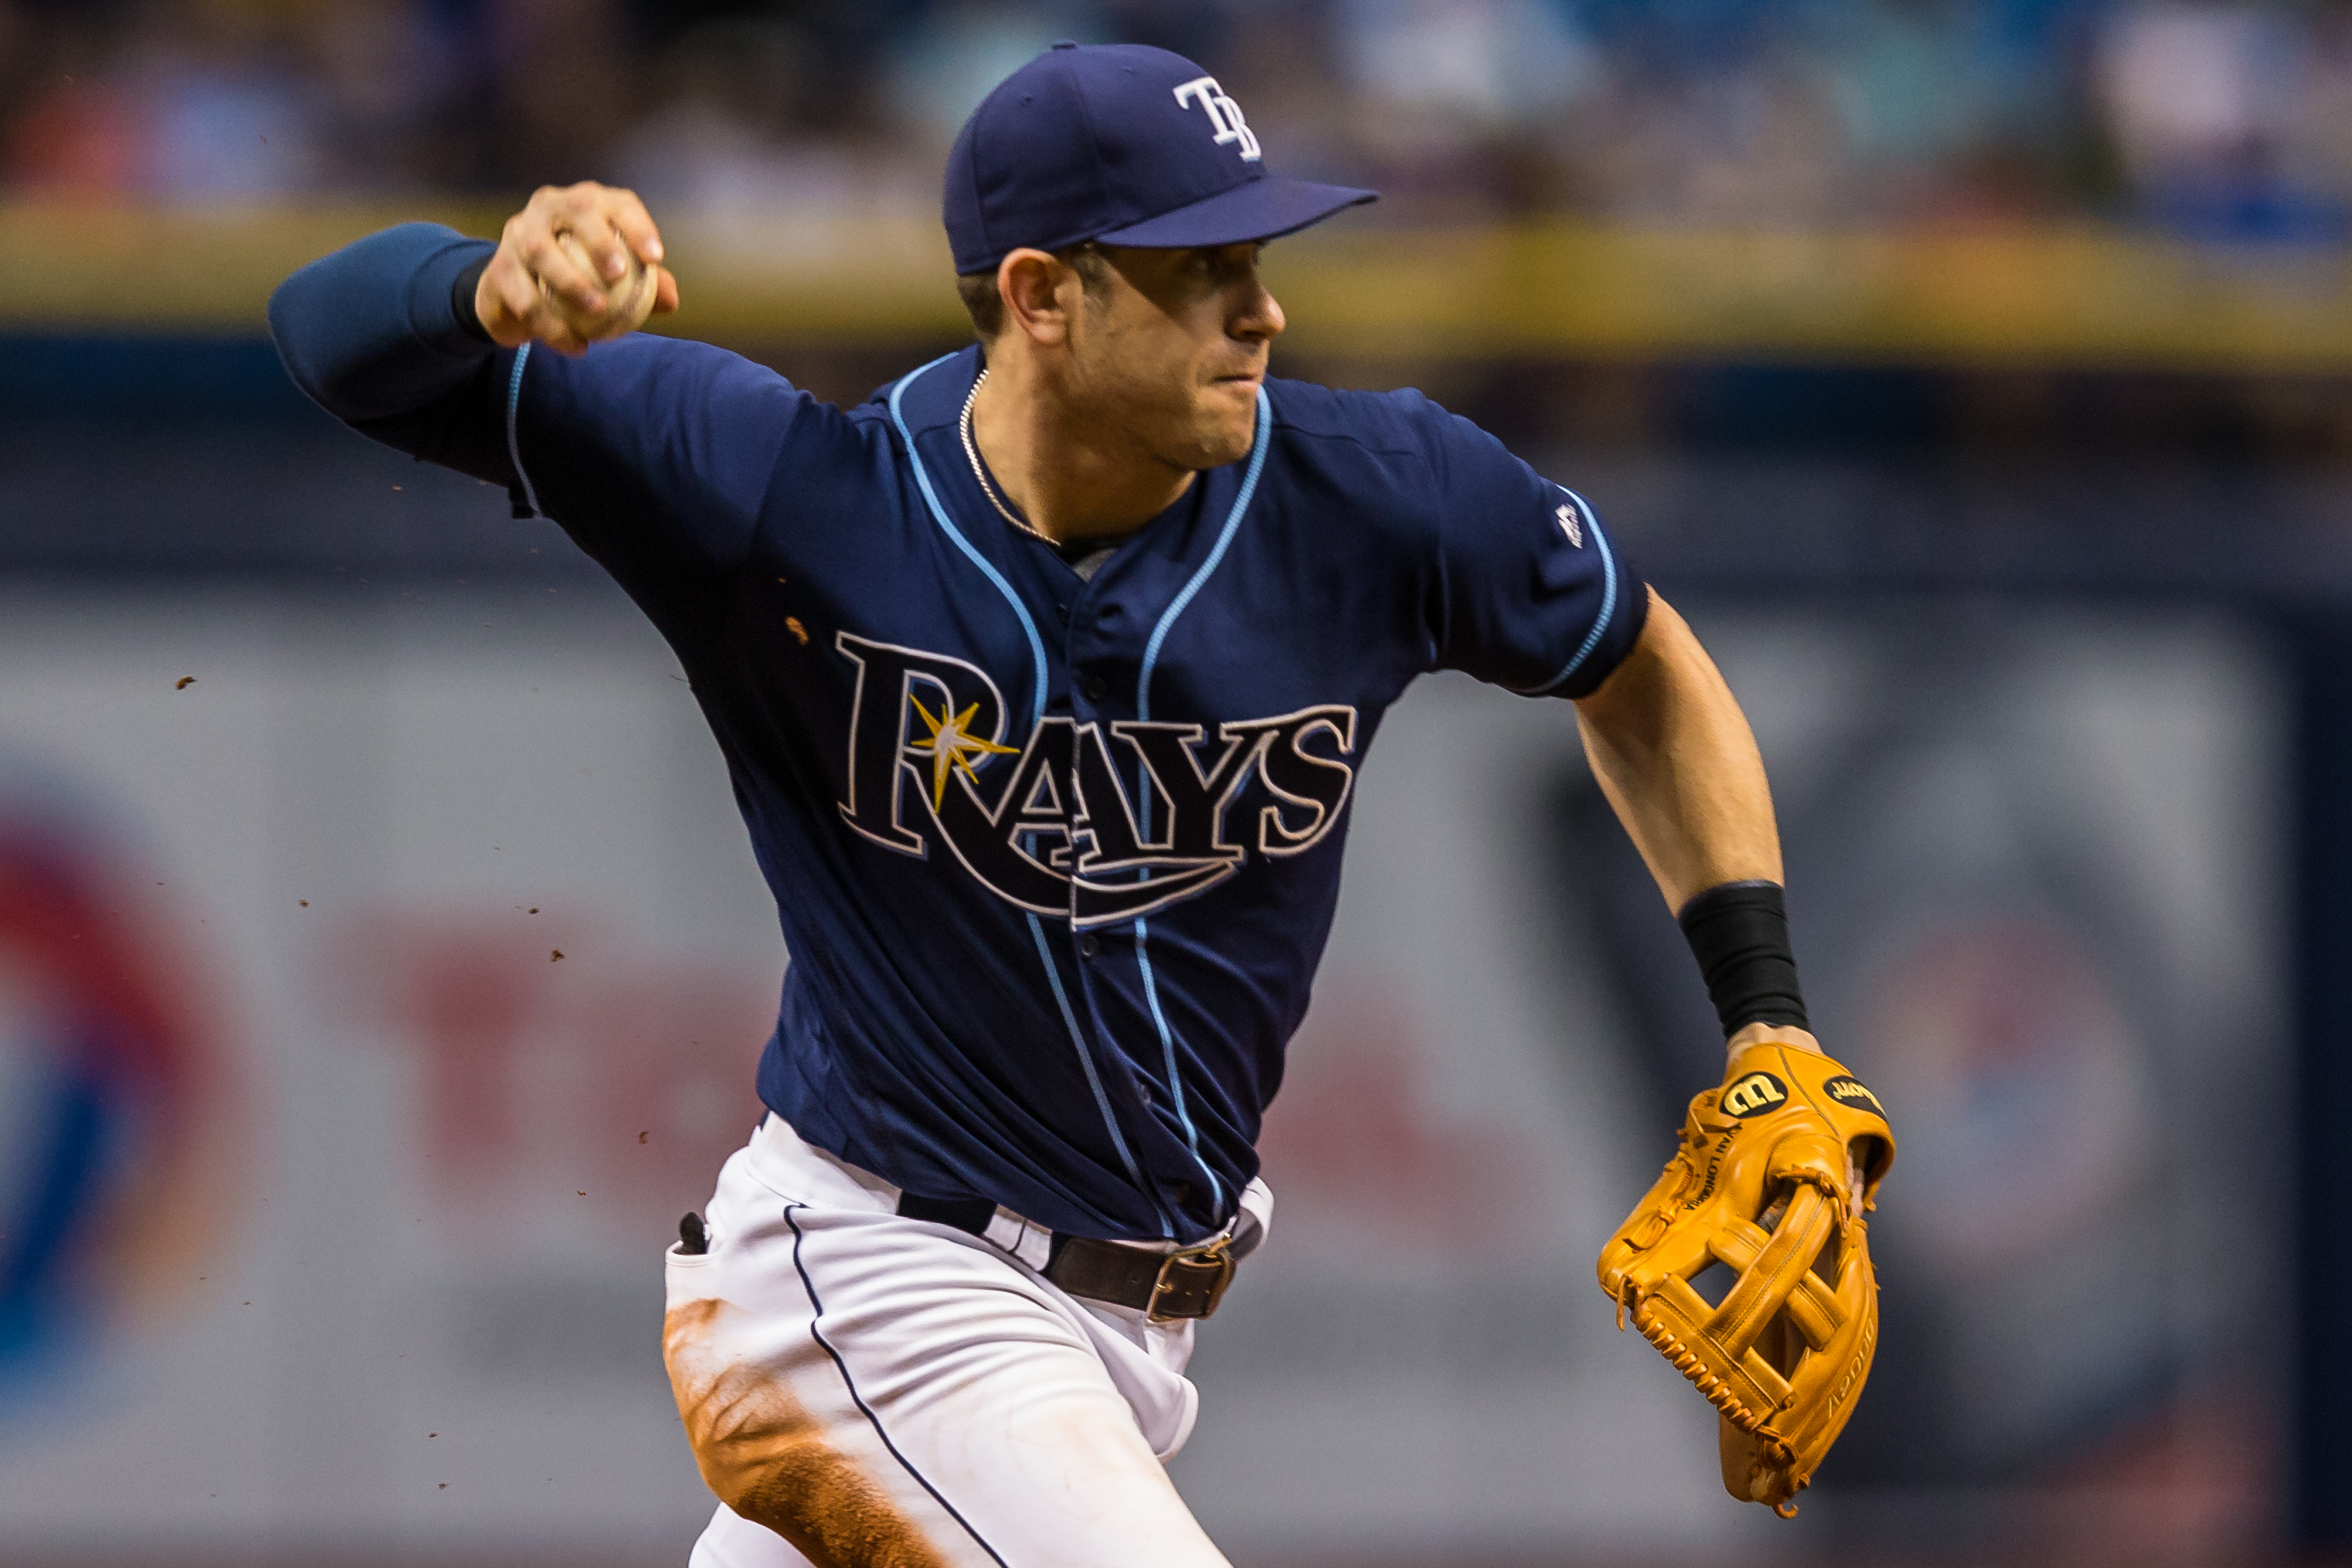 Longoria had two hits in the Rays' wn../TRAVIS PENDERGRASS